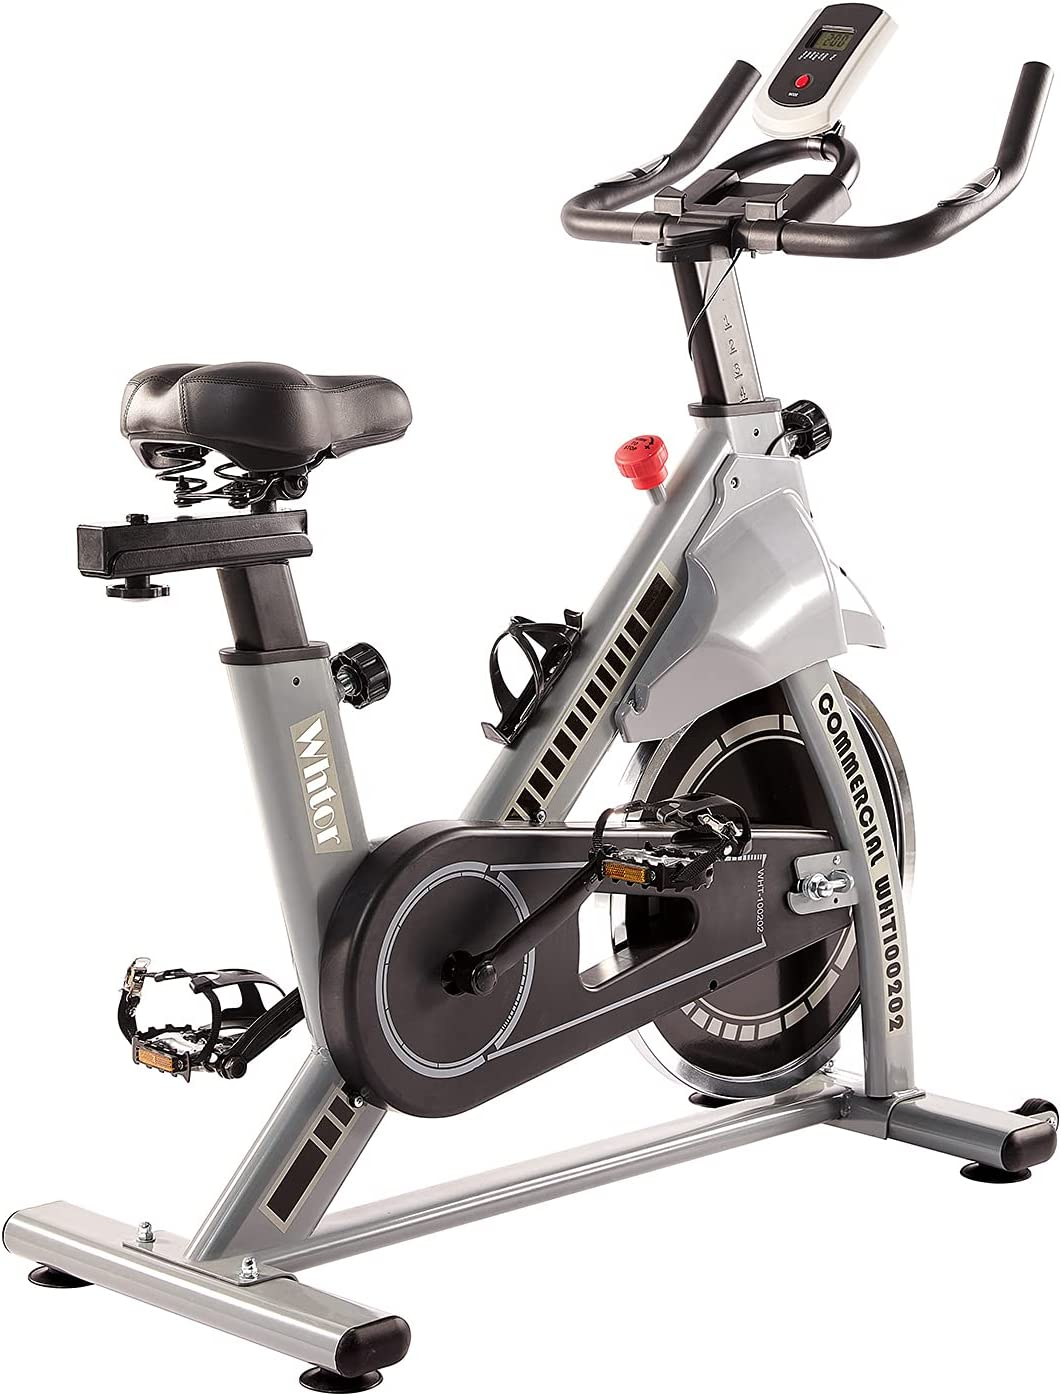 WHTOR Don't miss the campaign Indoor Exercise Bike Beauty products Stationary a Cycling with Pedal